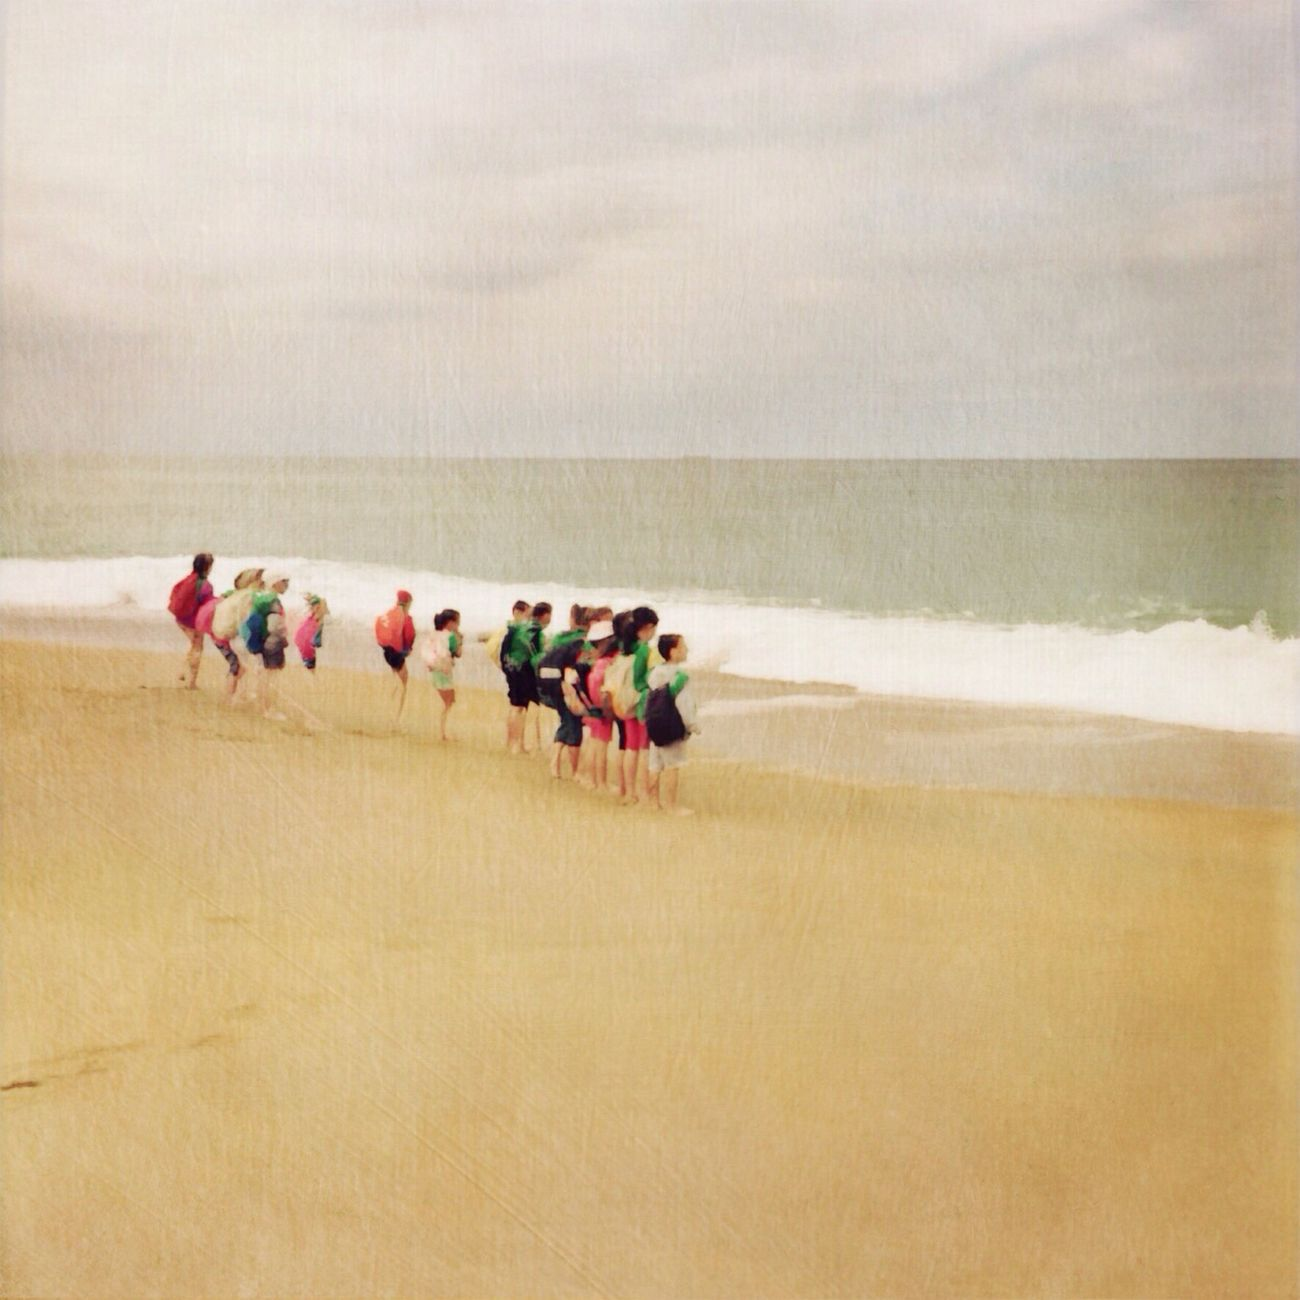 BYOPaper! Sand Beach Running Nature Outdoors Sea Childhood Children Photography Oceanside Happiness Real People Domestic Animals Day Sky Scenics Large Group Of People Water Beauty In Nature